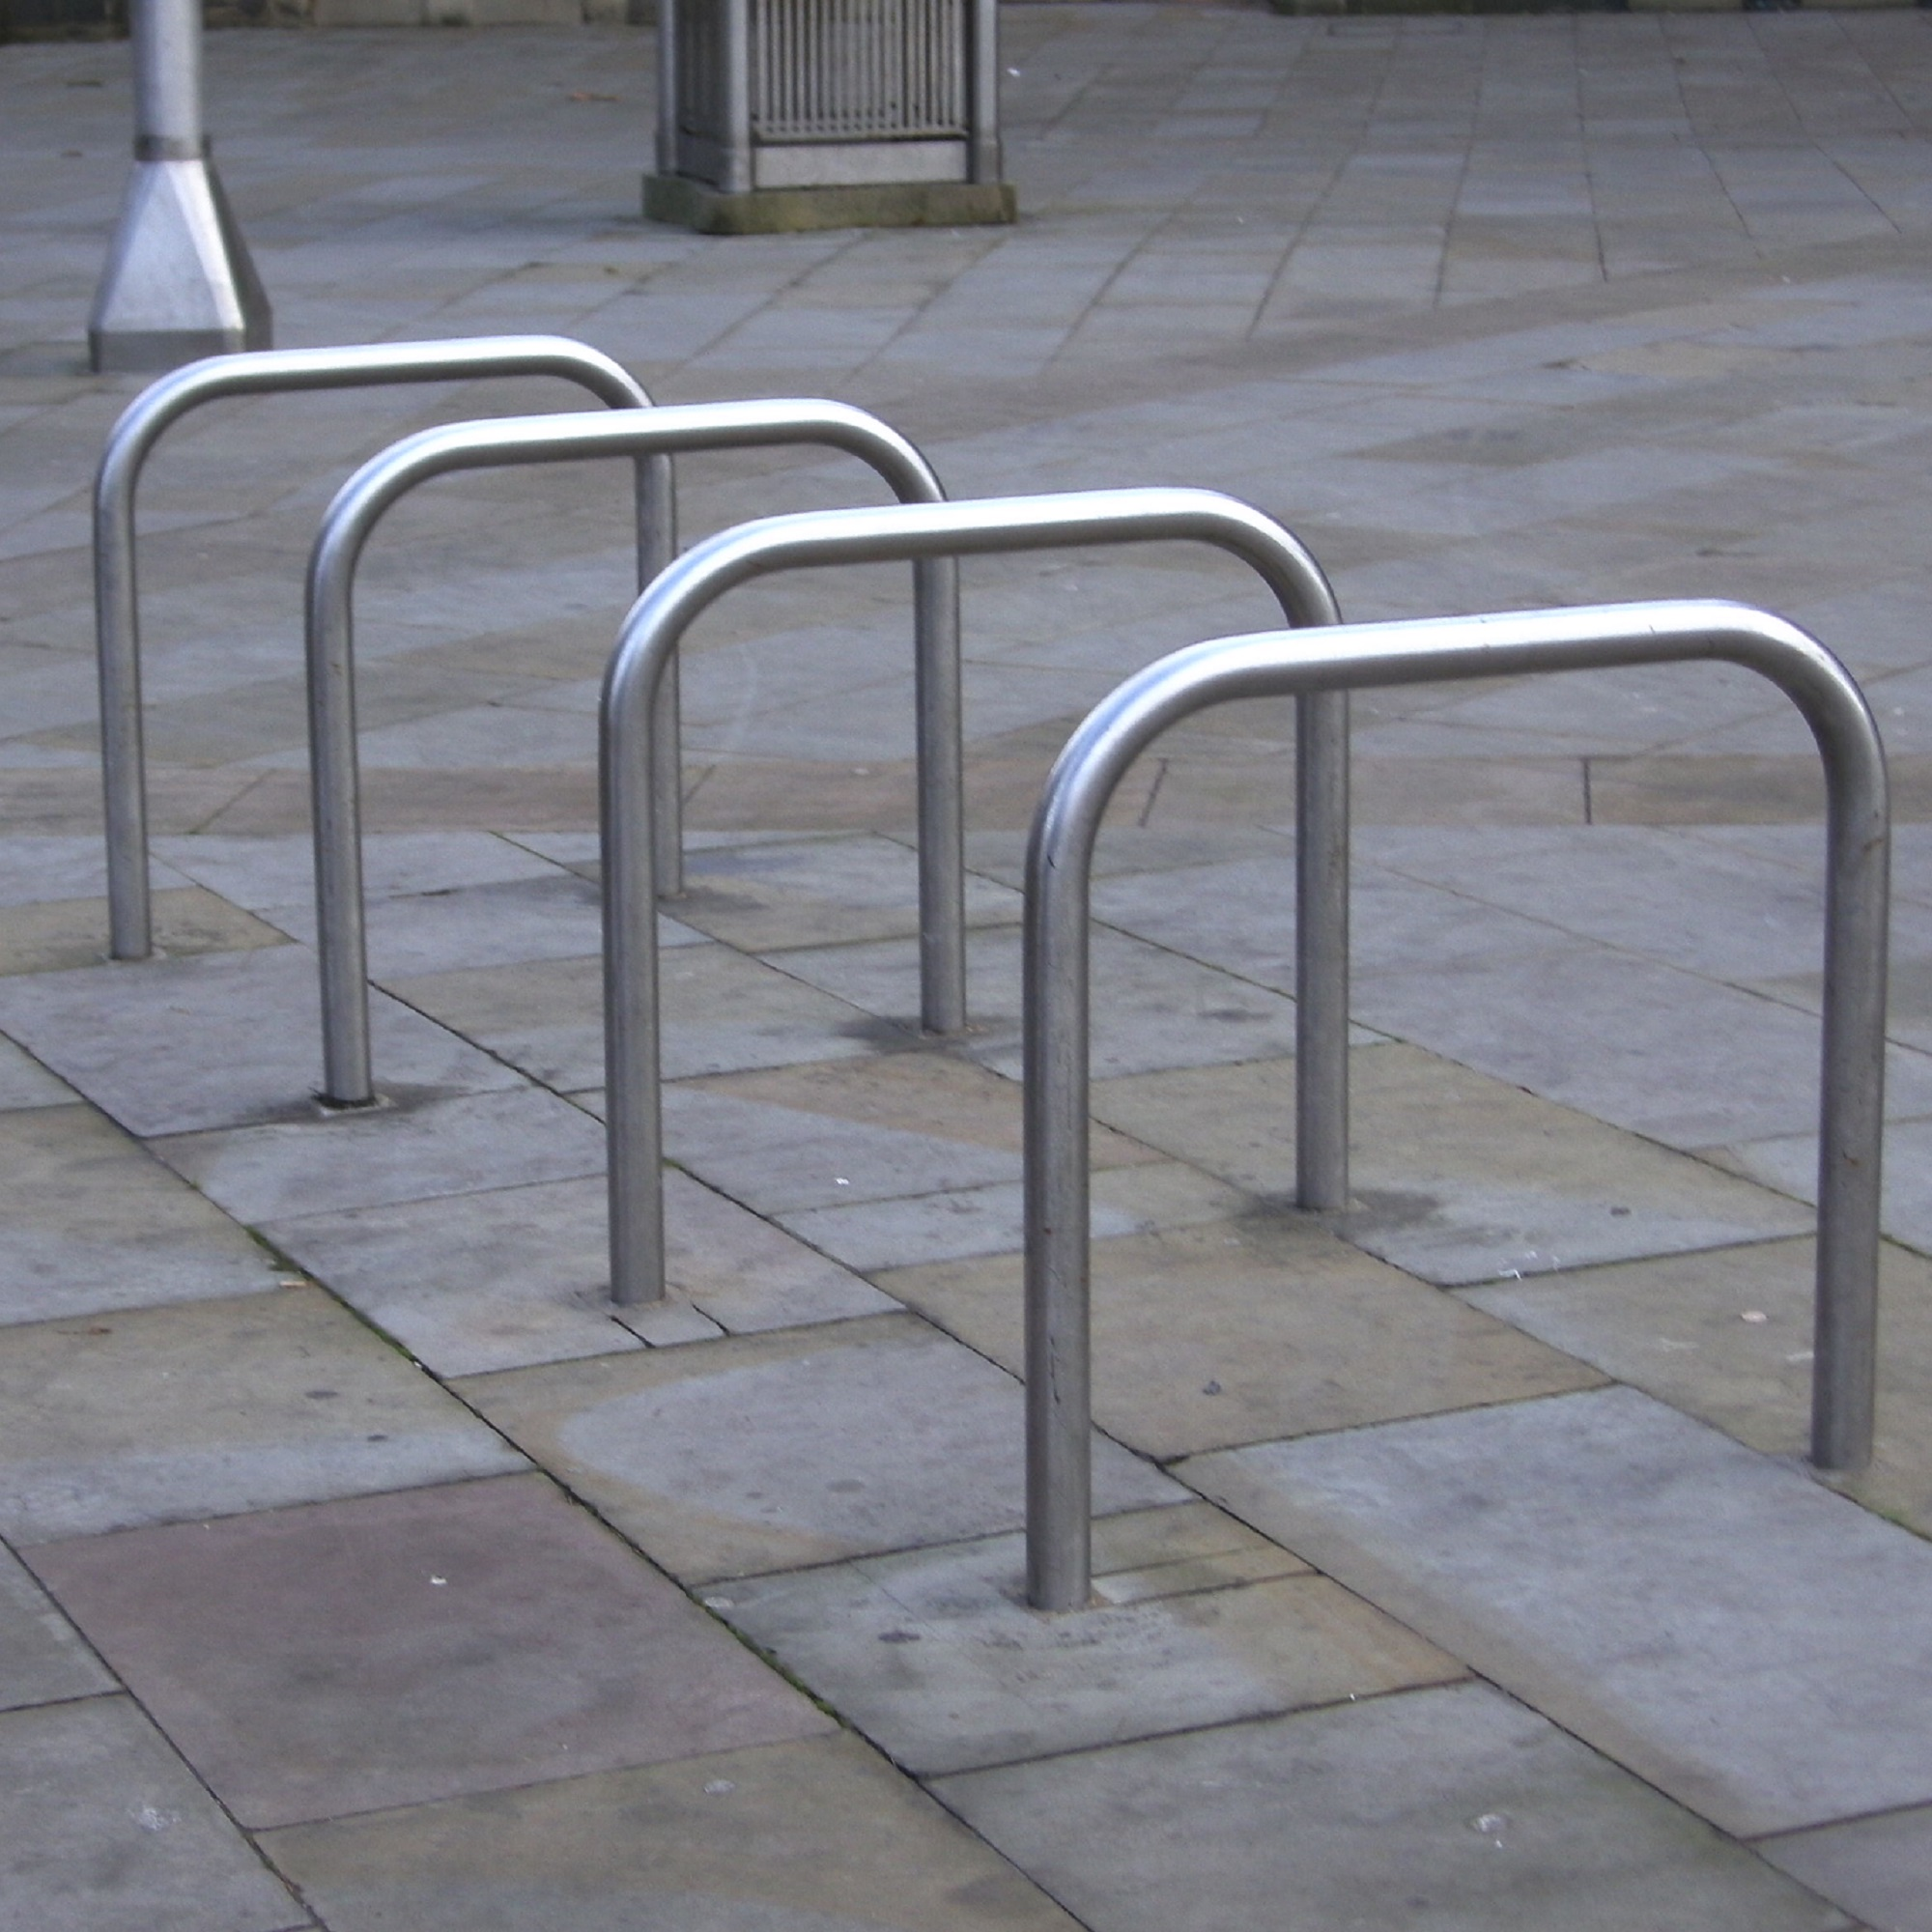 Sheffield Bike Stand, Sheffield Cycle Stand Stainless Steel – Root ...